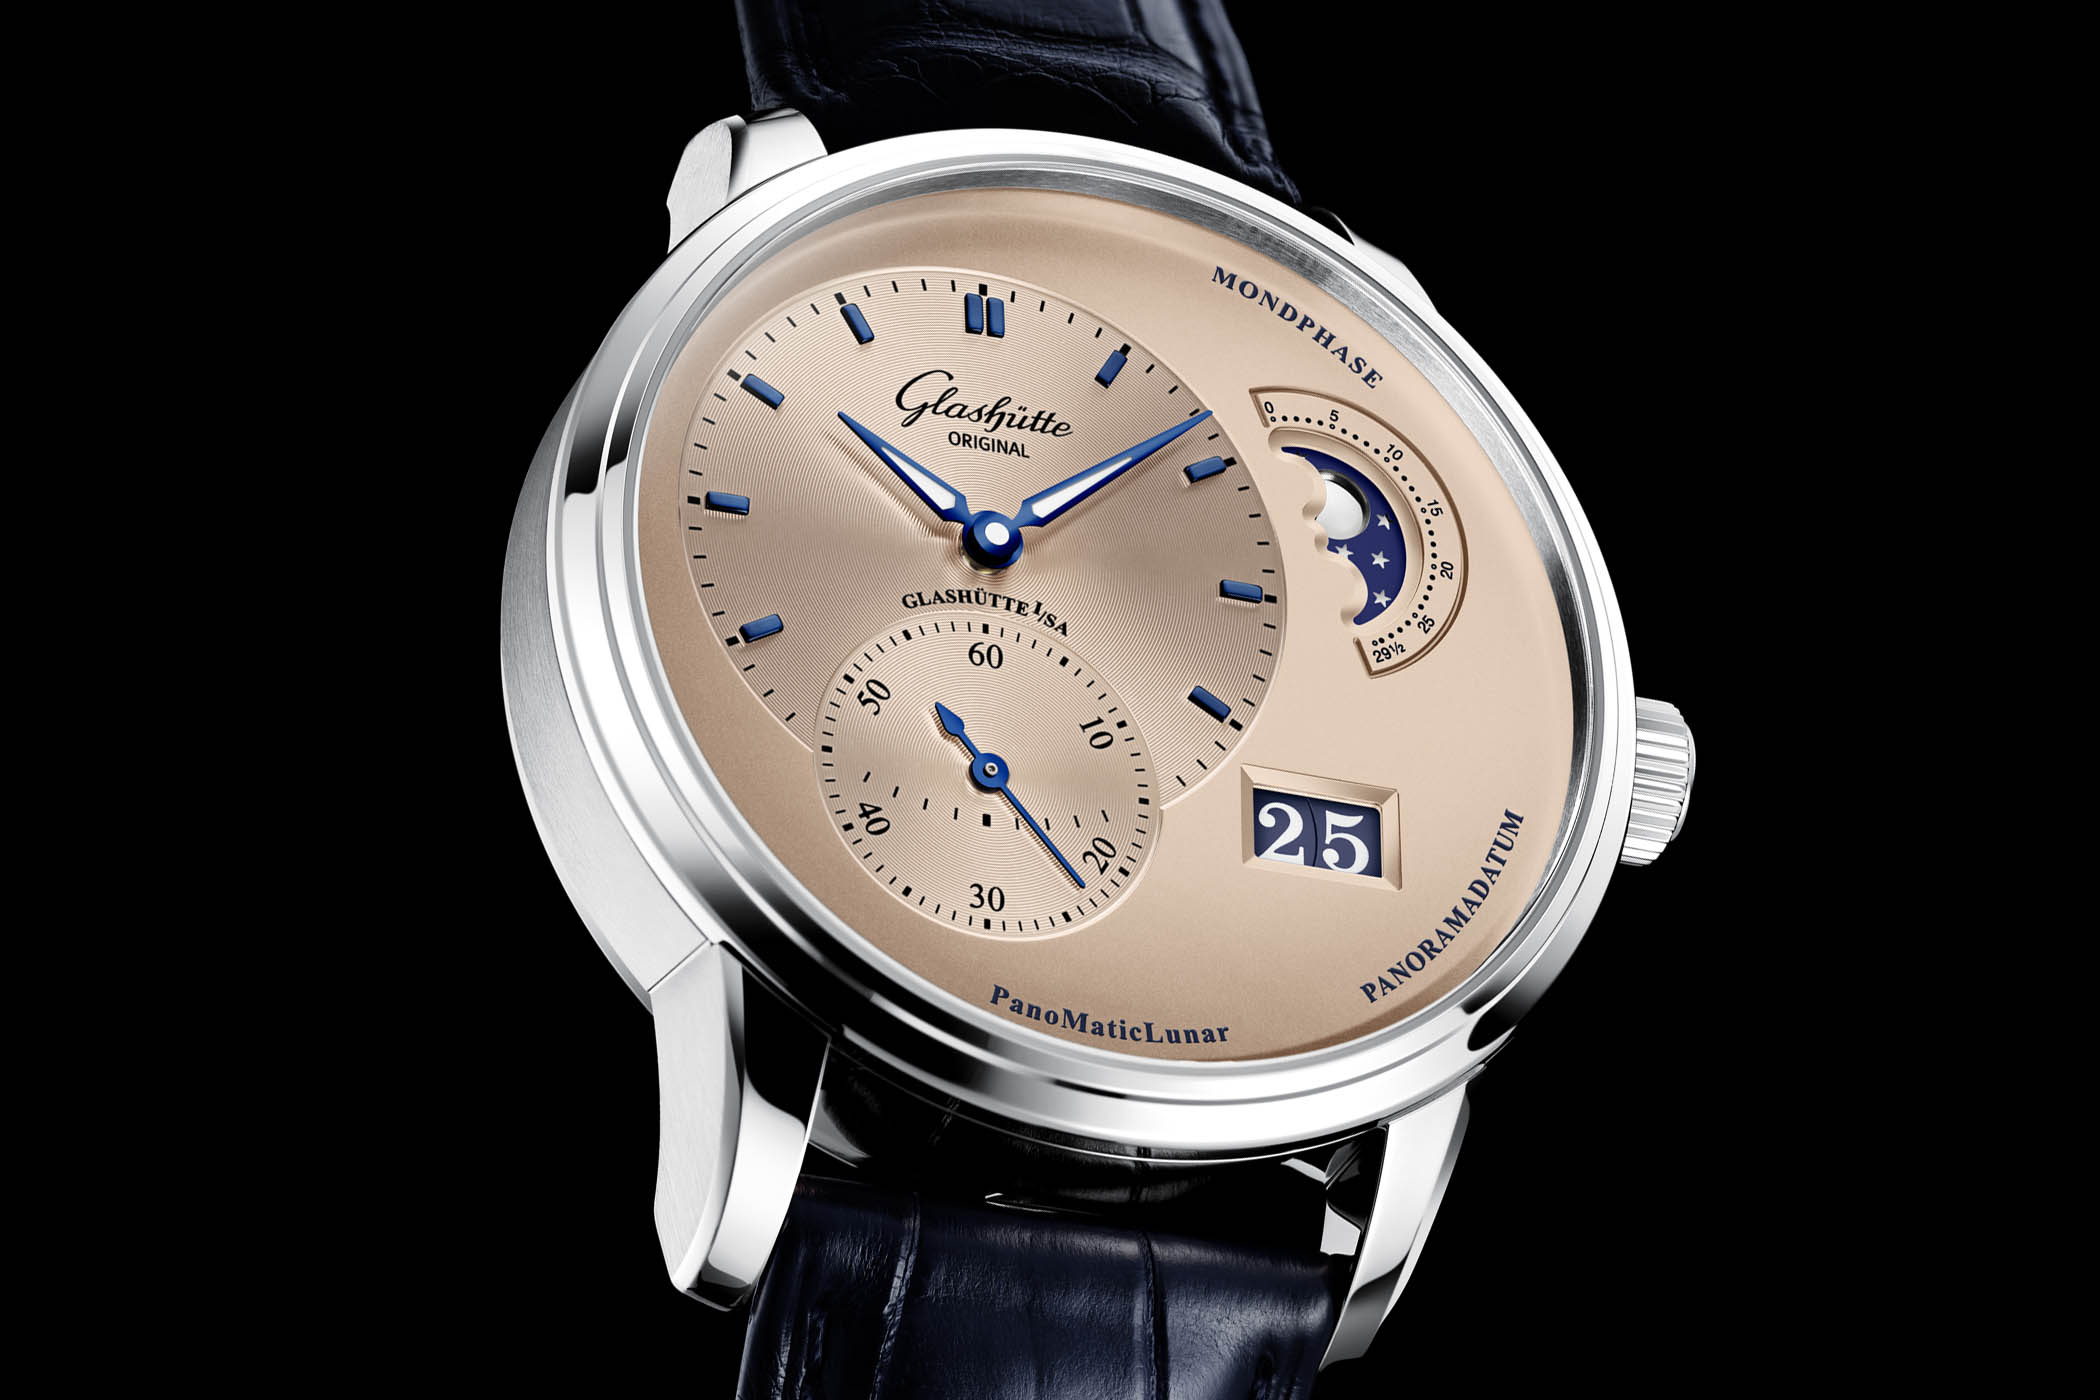 Glashutte Original PanoMaticLunar Salmon Rose Opaline Dial Steel case Limited Edition